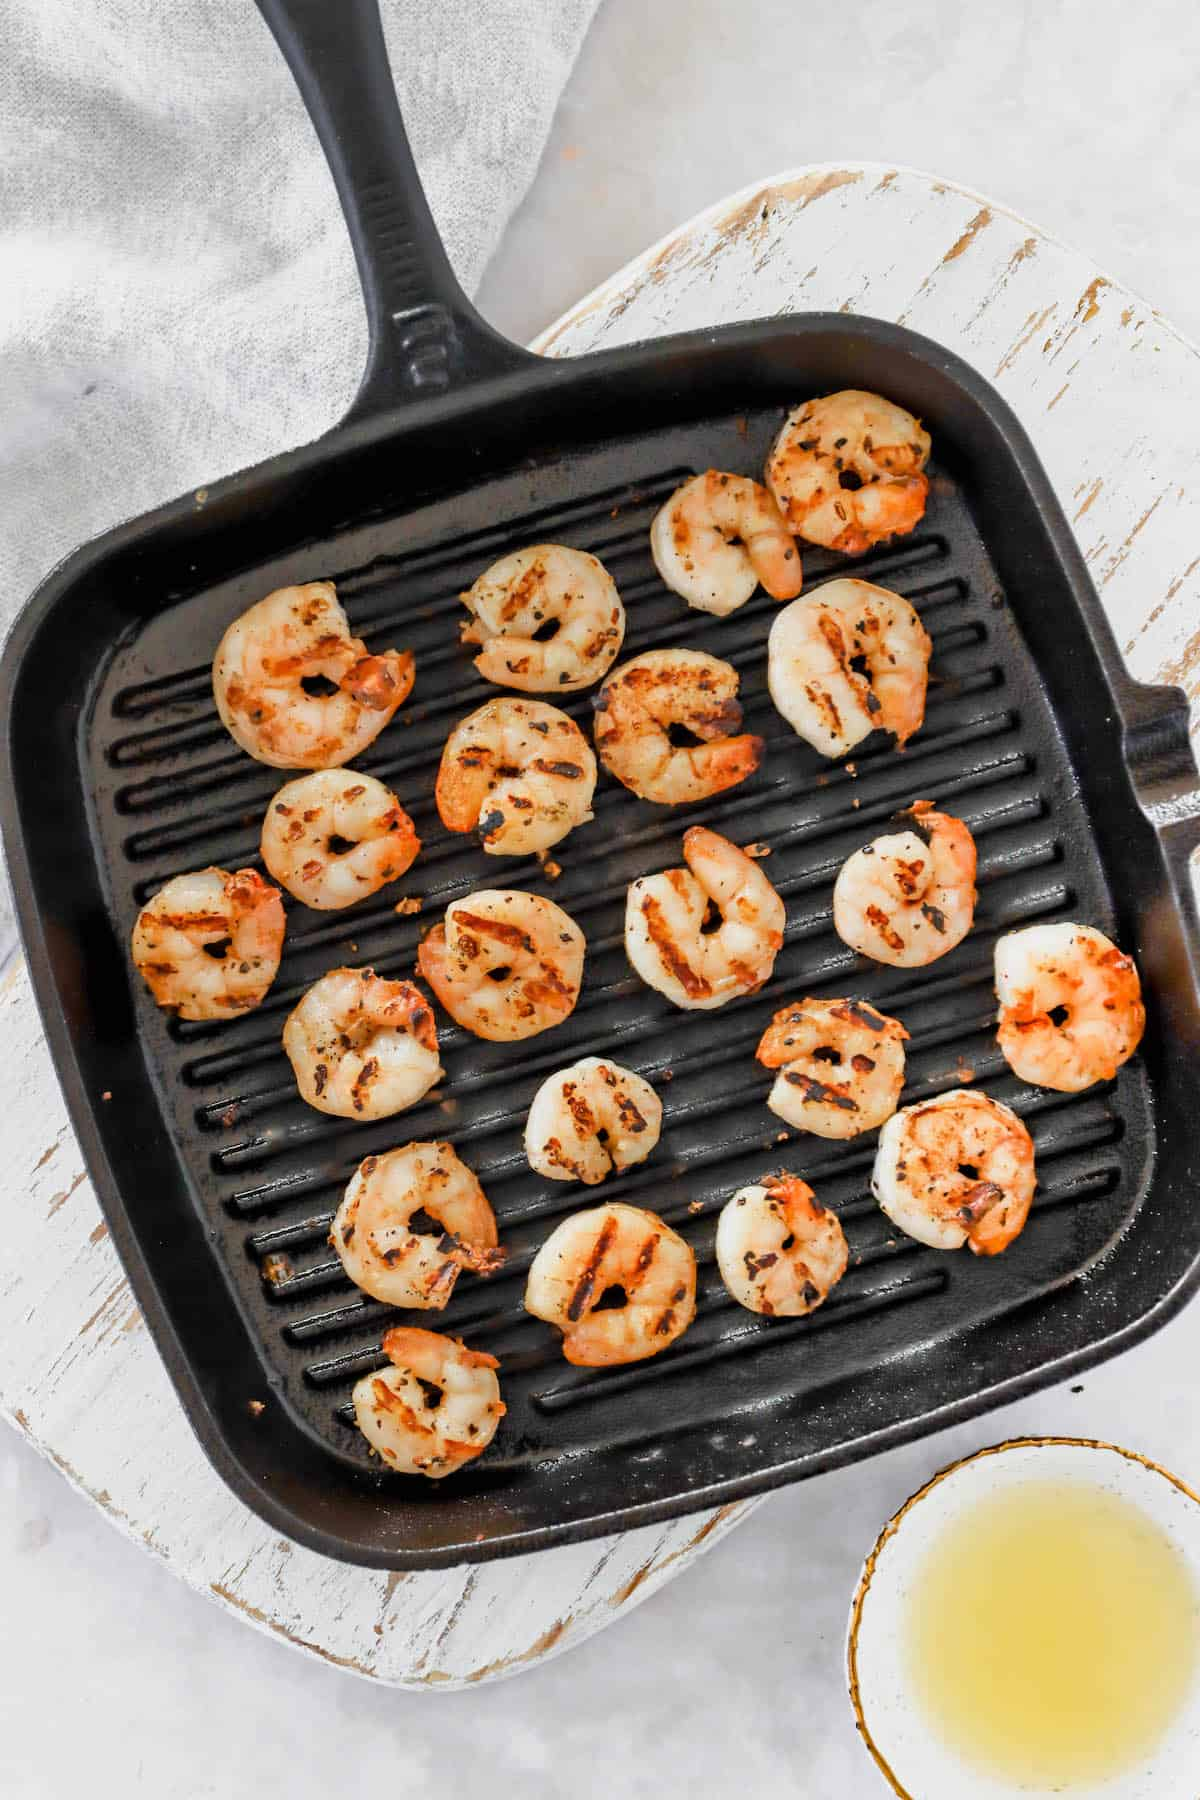 Shrimp cooking on a grill pan